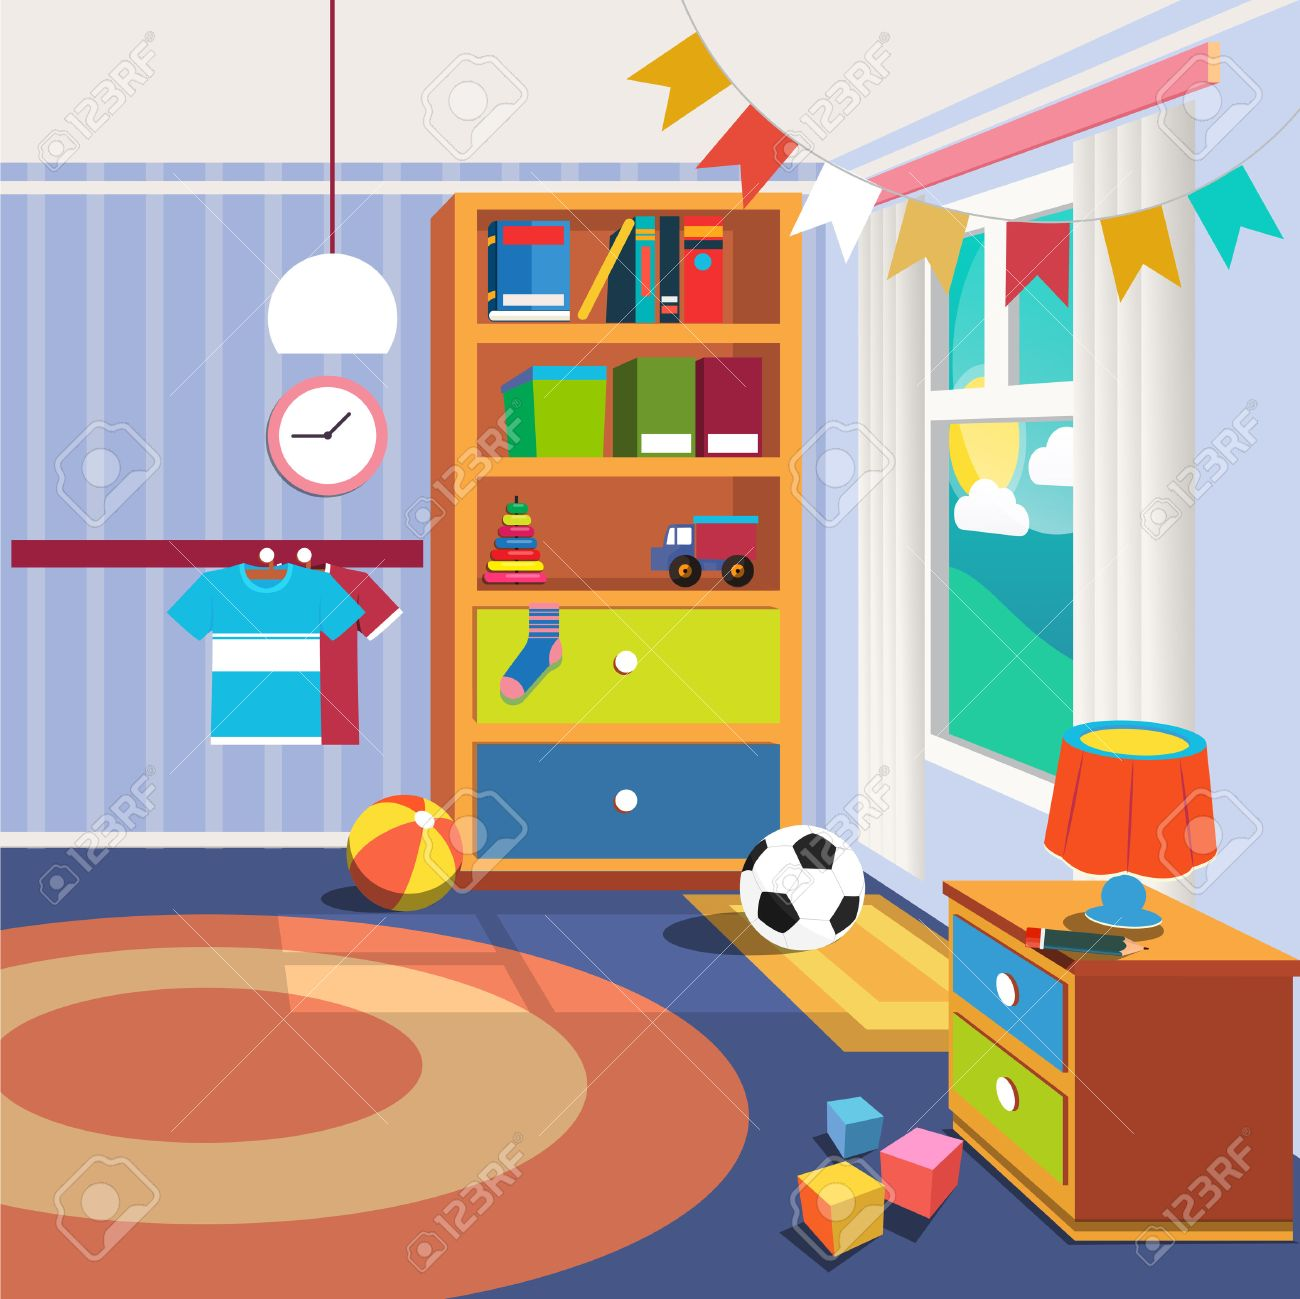 Image of: Children Bedroom Interior With Furniture And Toys Vector Illustration Royalty Free Cliparts Vectors And Stock Illustration Image 59661859